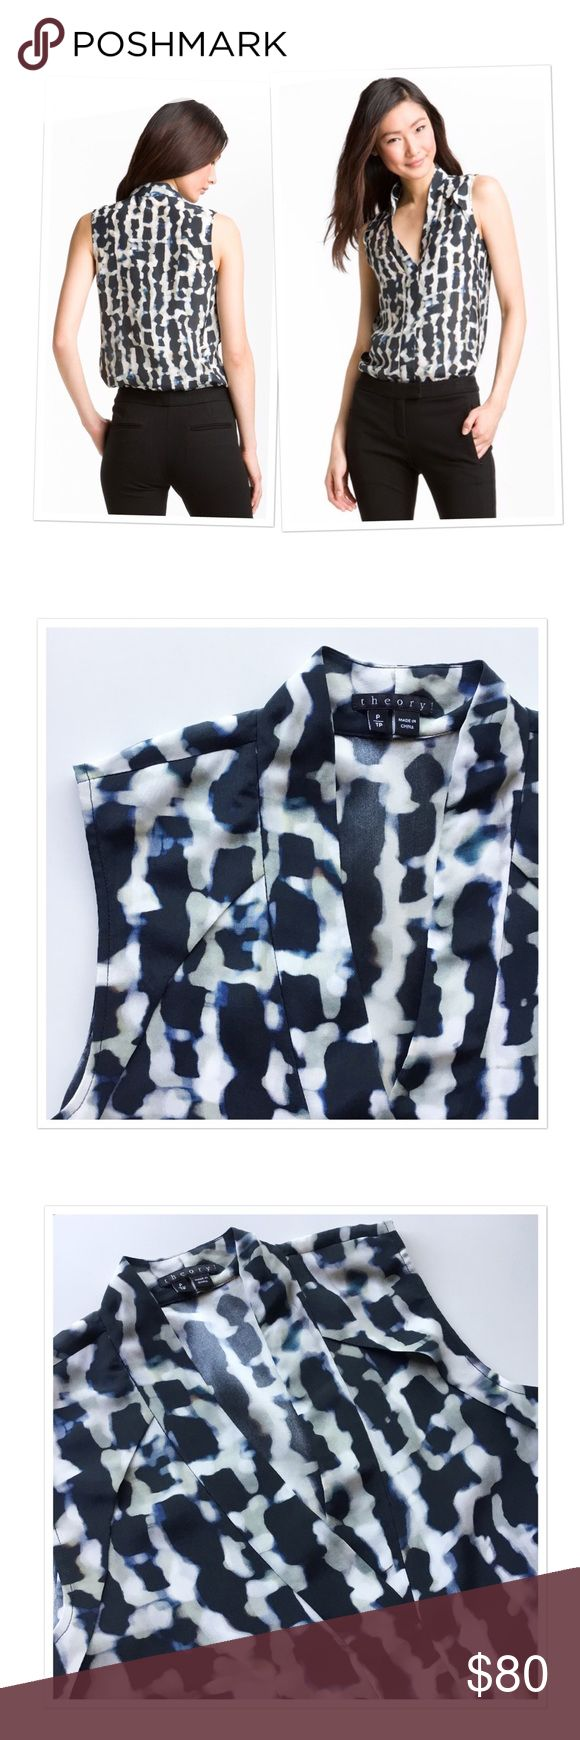 """Theory 'Moha' abstract clouds silk top Blurred abstract print. Pull on styling. Structural folds define the neckline and side seams. 100% silk. Worn once and in a great condition. Pit to pit: 17"""", length: 25"""". Theory Tops"""